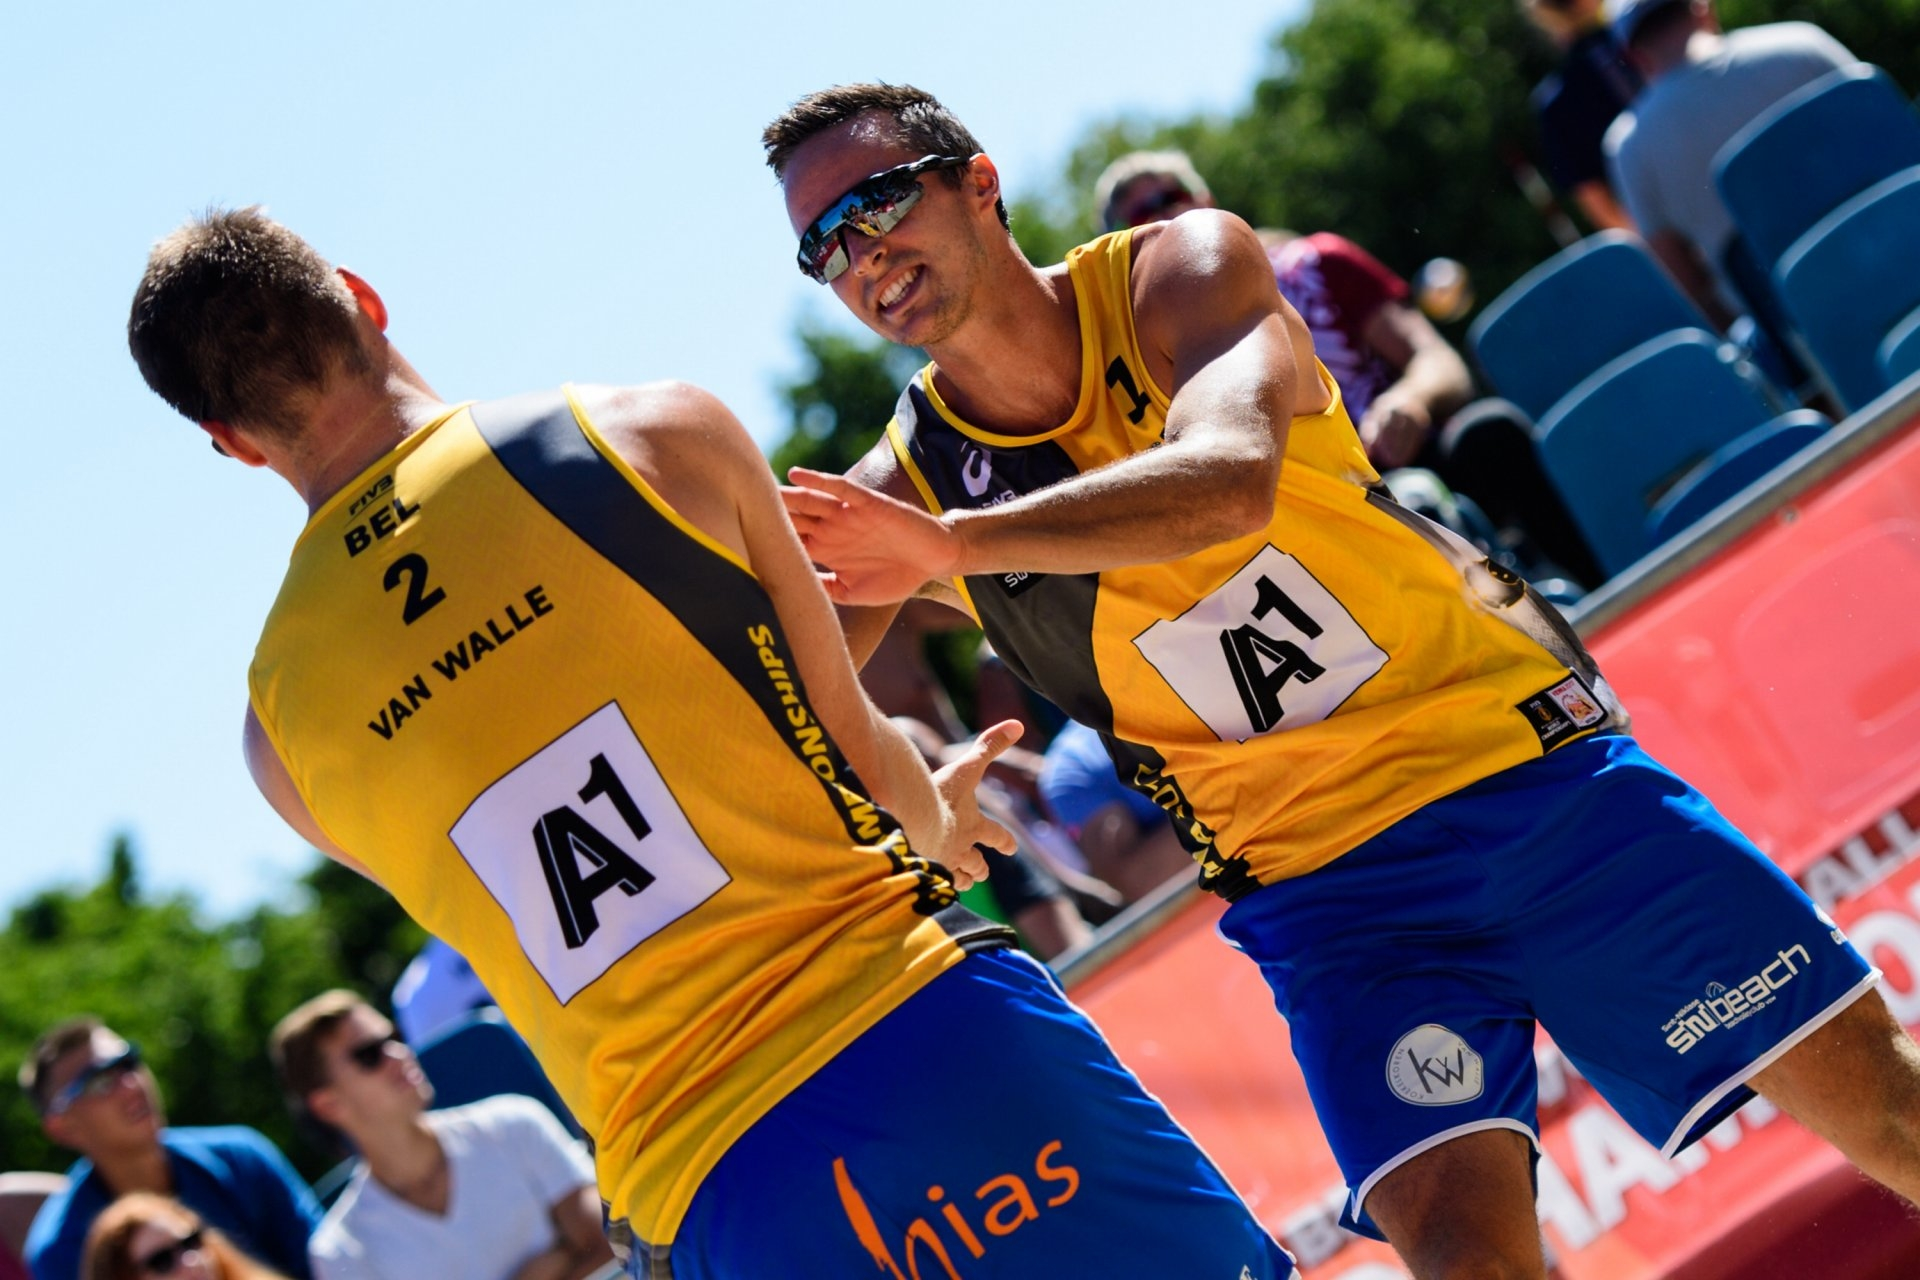 Tom van Walle and Dries Koekelkoren finished ninth on last year's World Championships (Photocredit: FIVB)